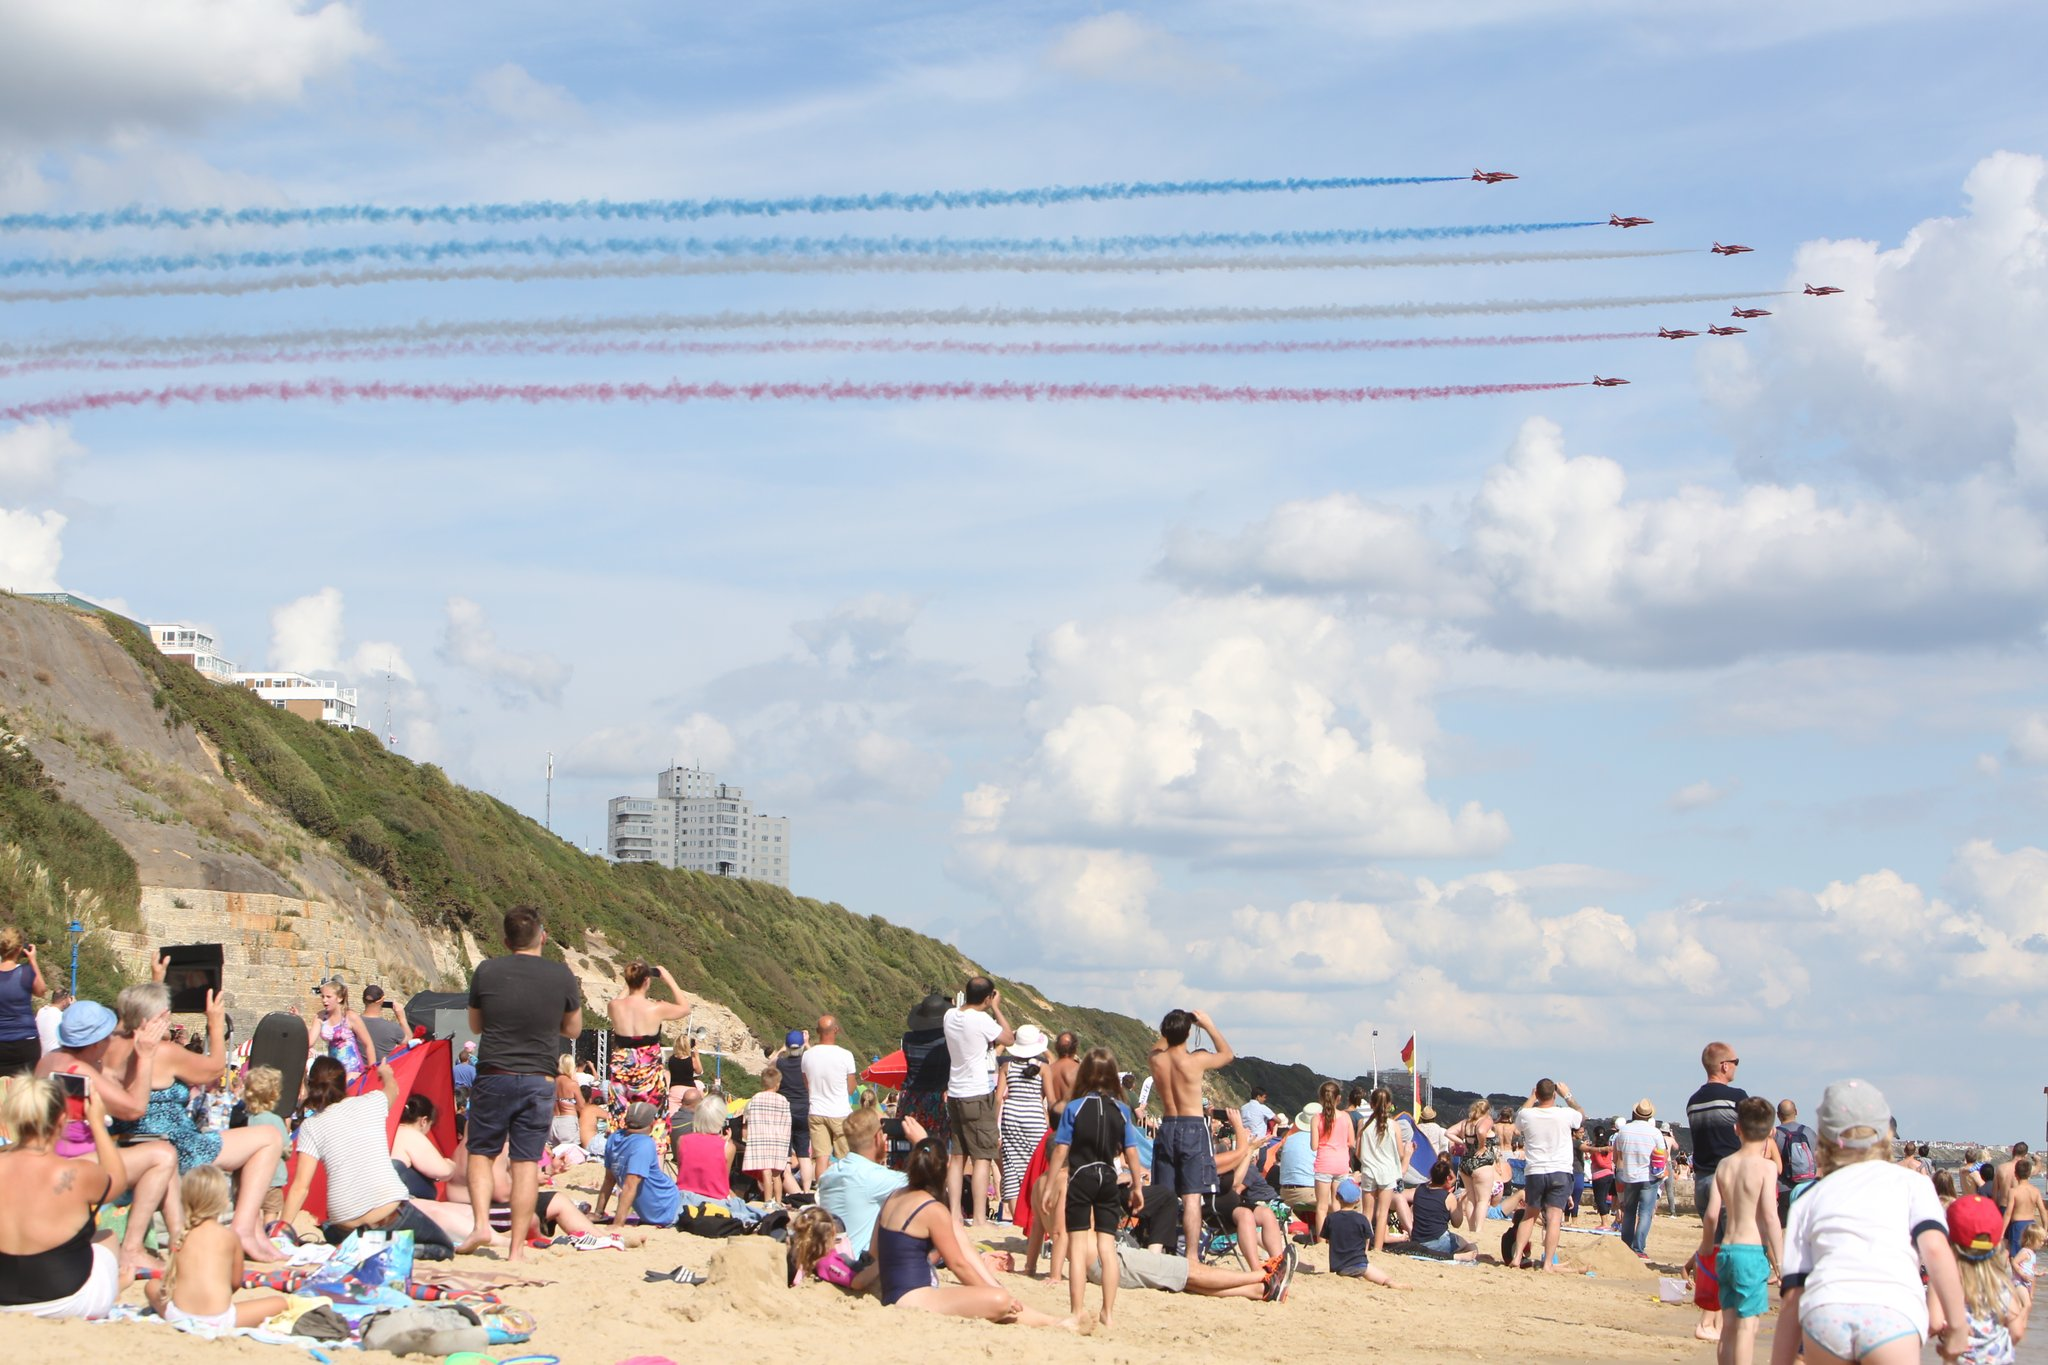 Bournemouth Air Festival 2017: What's happening on day three?